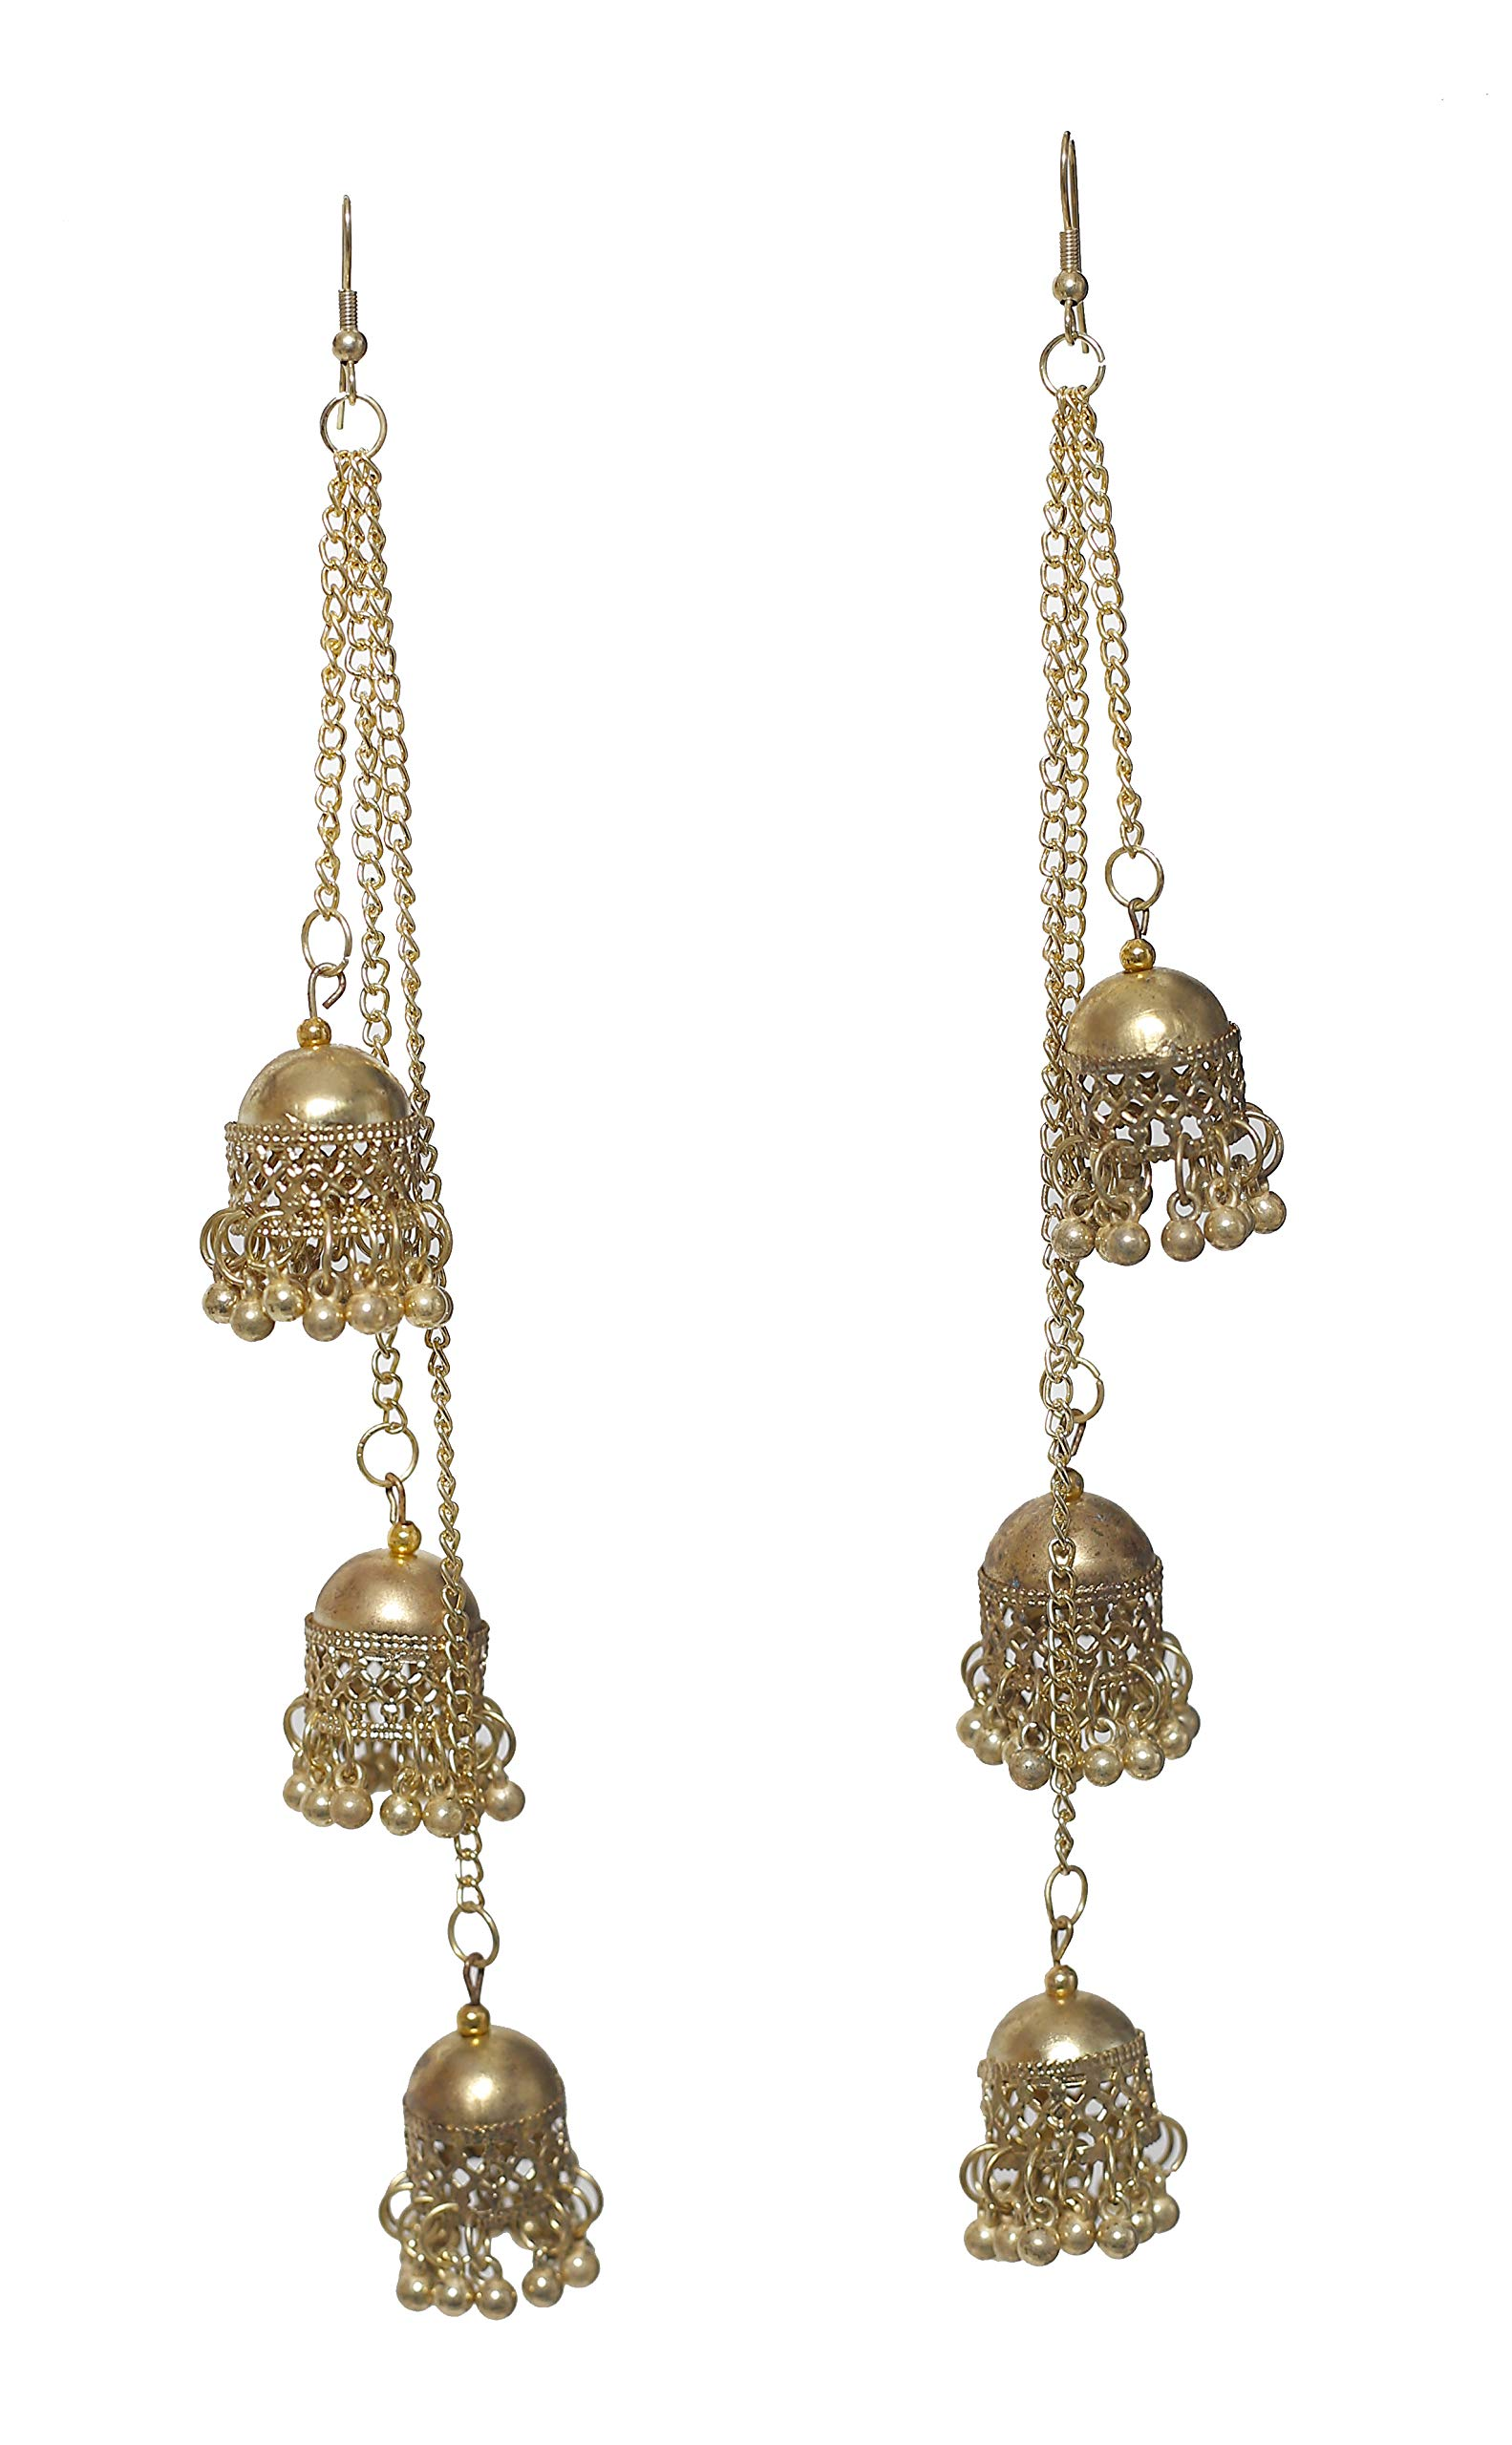 Jwellmart Afghani Bohemian Kashmiri Style Oxidized Drop Dangle Bali Jhumka Indian Long Earrings for Women and Girls